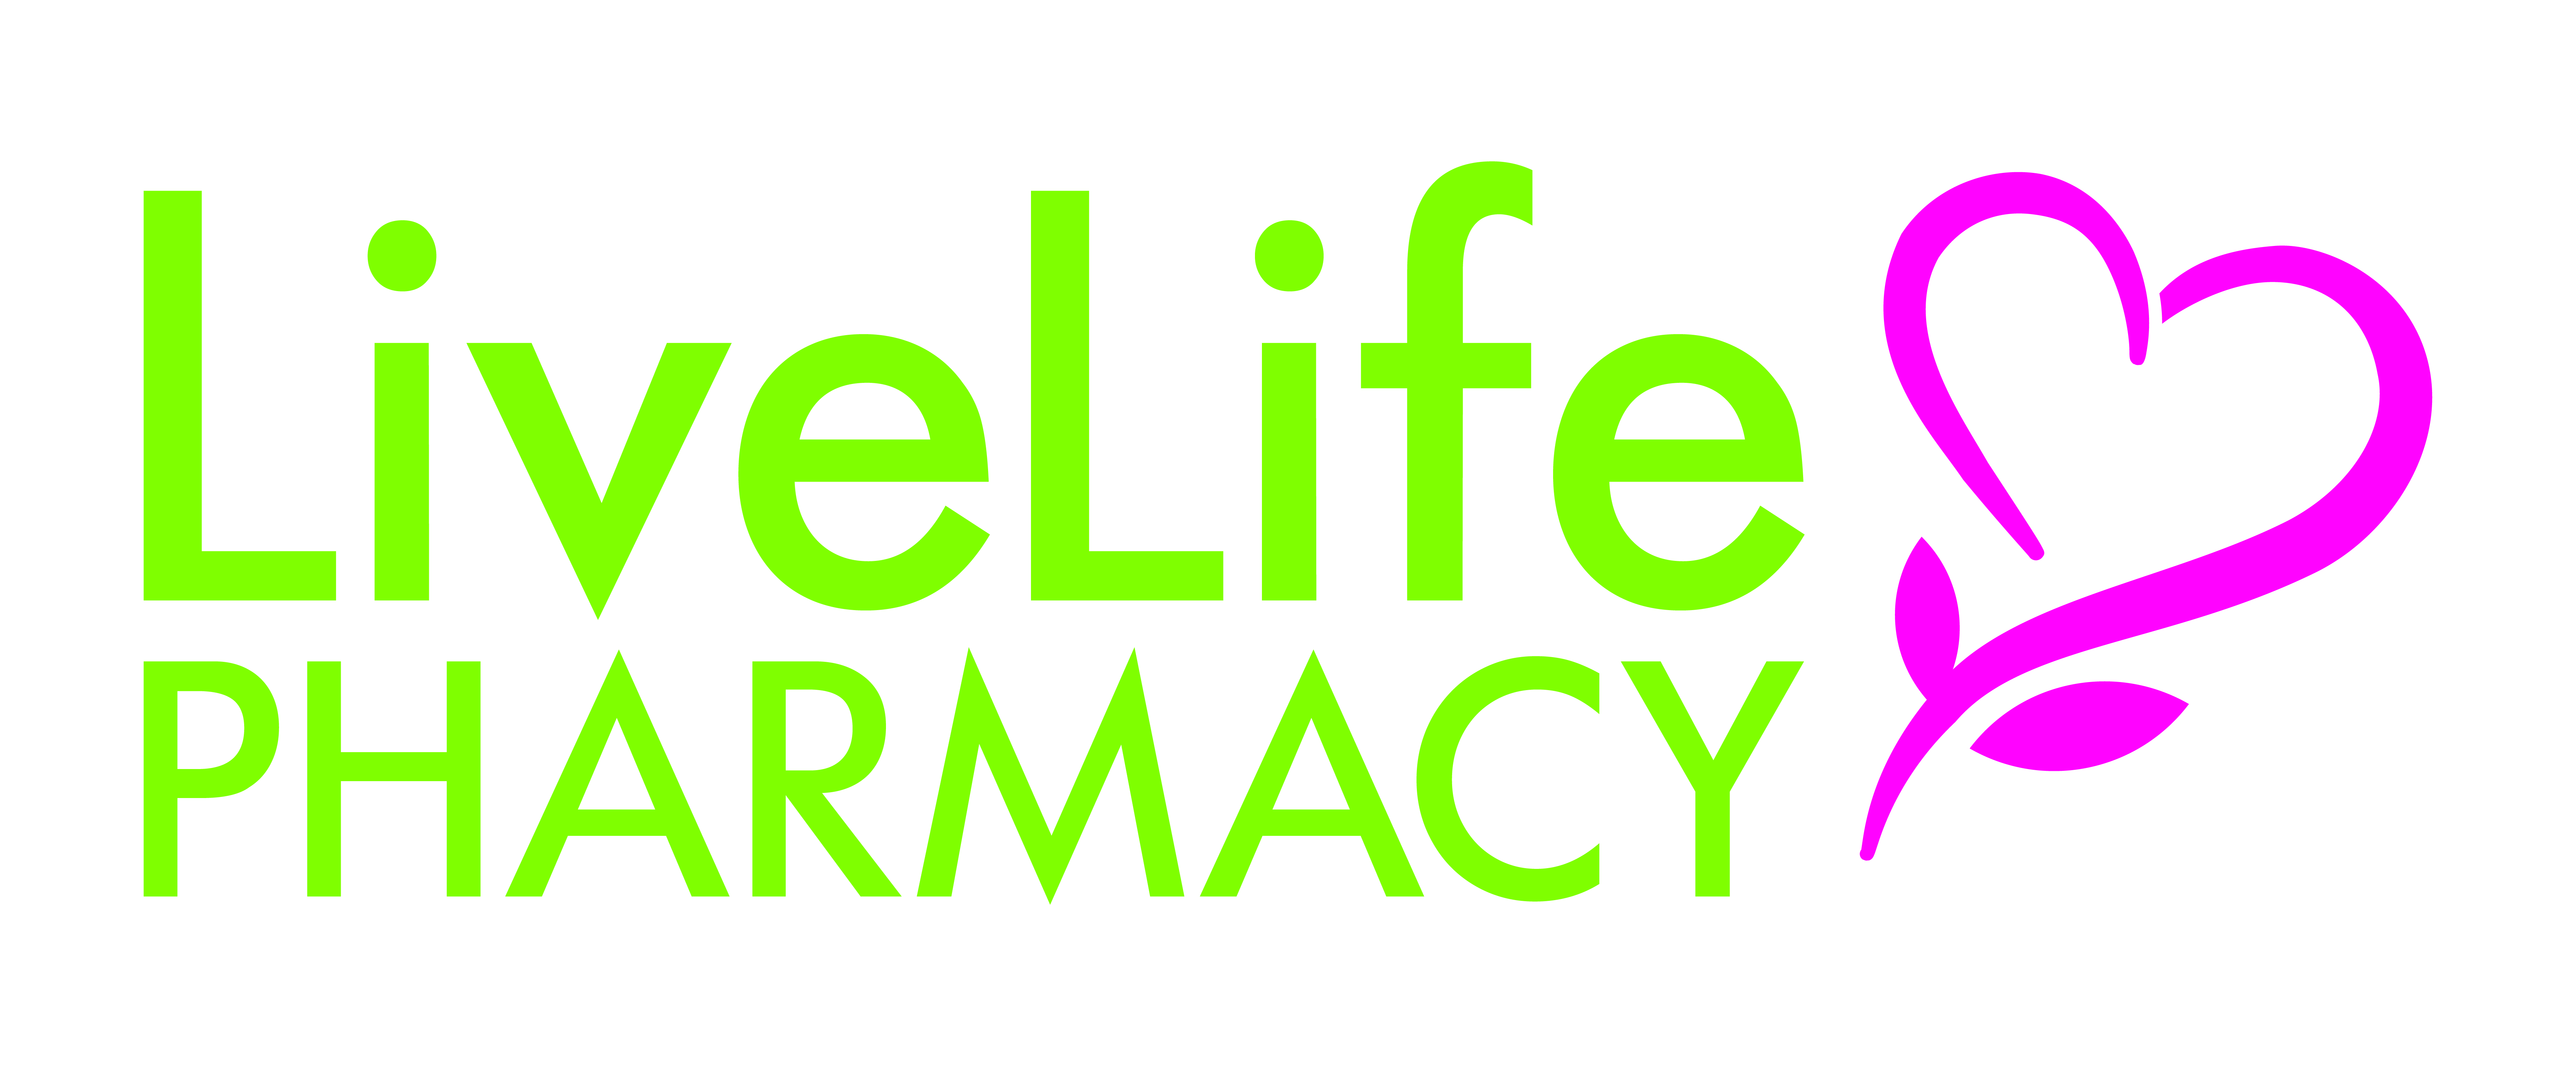 LiveLife Pharmacy Mercato on Byron - Byron Bay, NSW 2481 - (02) 6685 7401 | ShowMeLocal.com